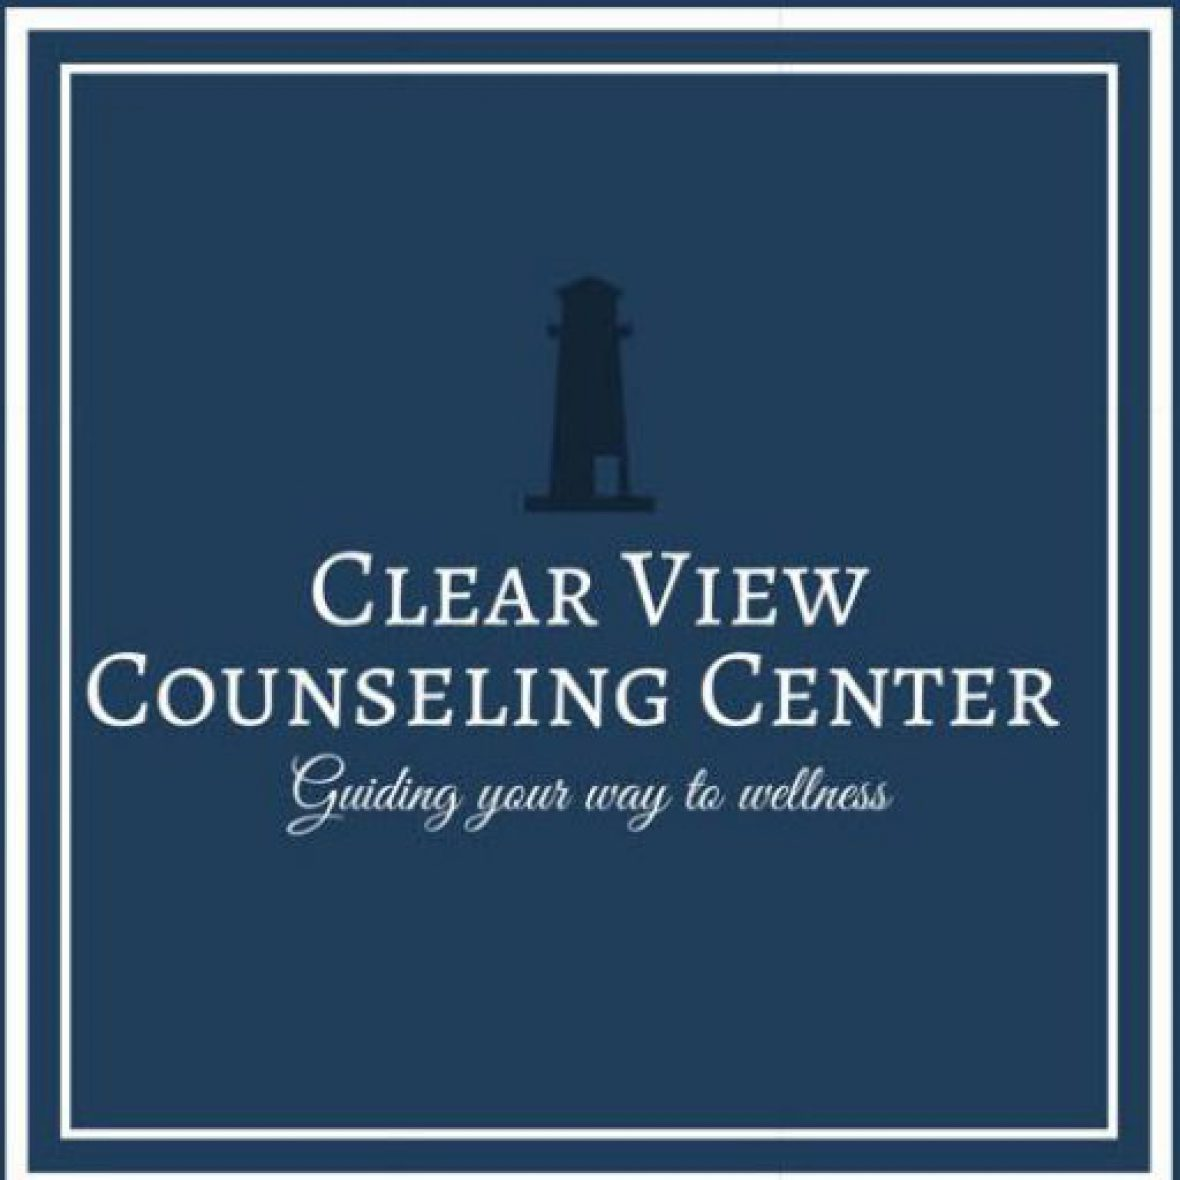 Clear View Counseling Center